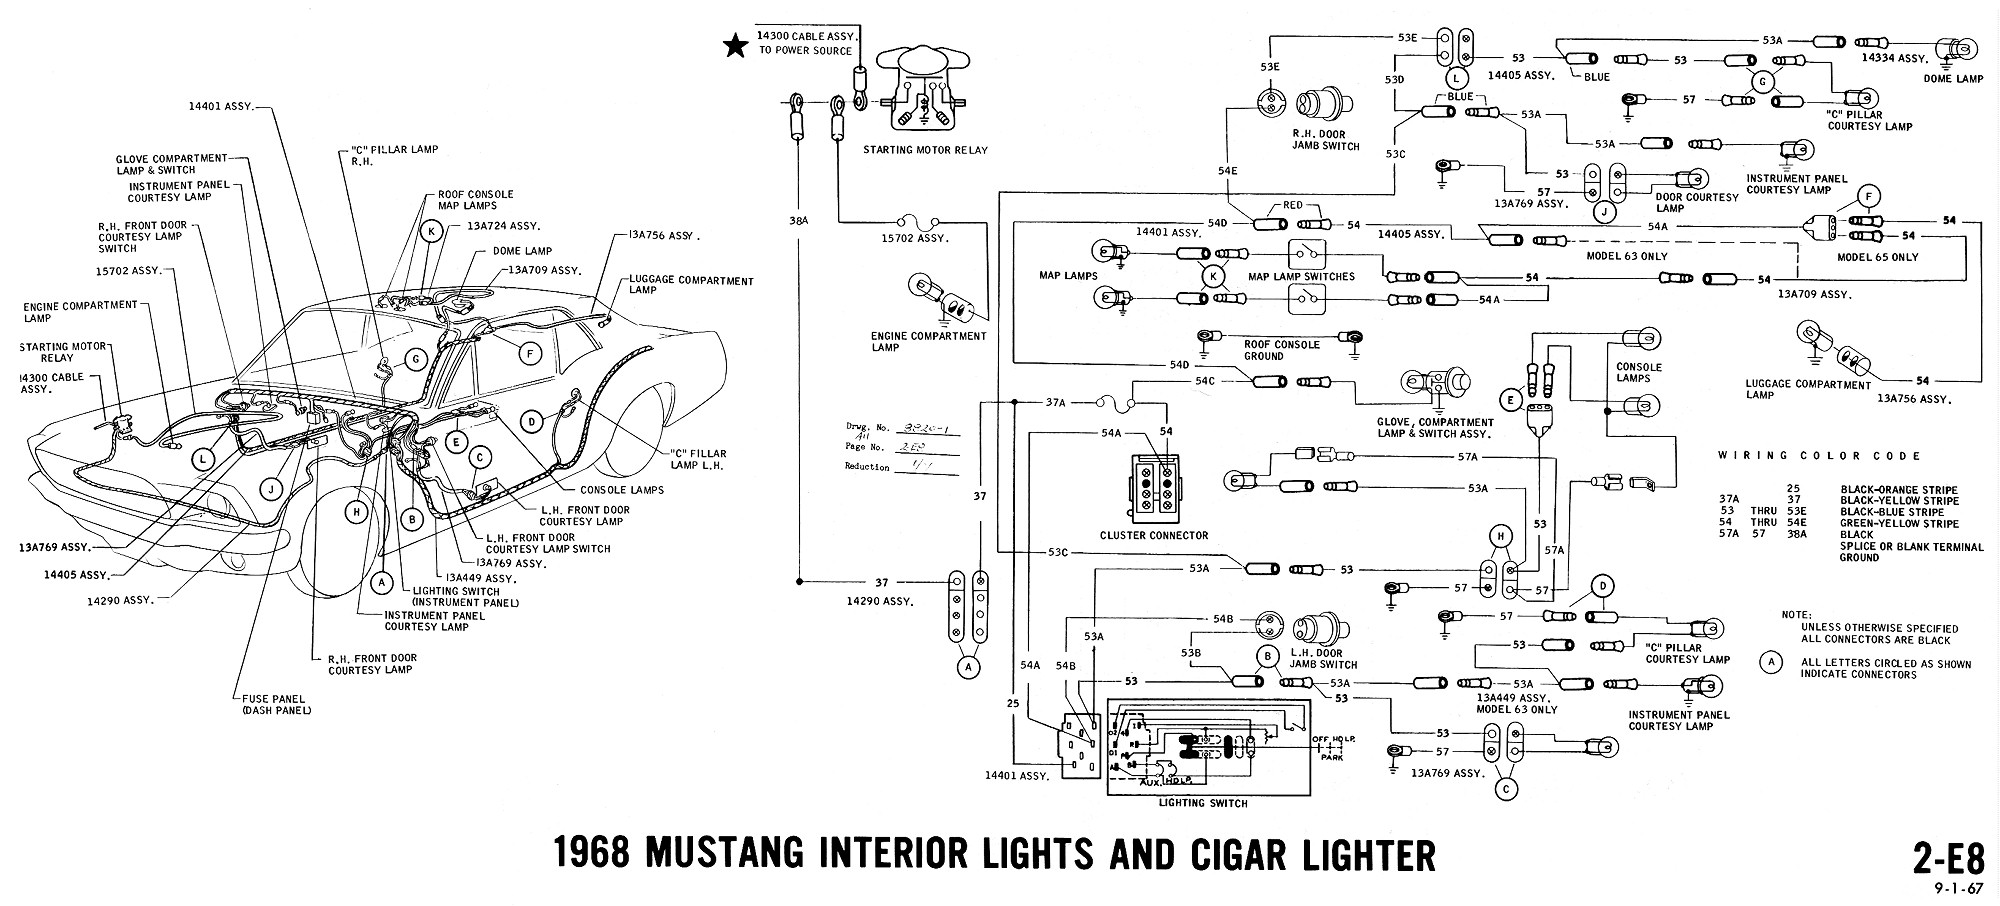 65 Mustang Turn Signal Switch Wiring Diagram - Honda Turn Signal Wiring  Diagram - gsxr750.yenpancane.jeanjaures37.fr | 1980 Ford Mustang Turn Signal Switch Wiring Diagram |  | Wiring Diagram Resource